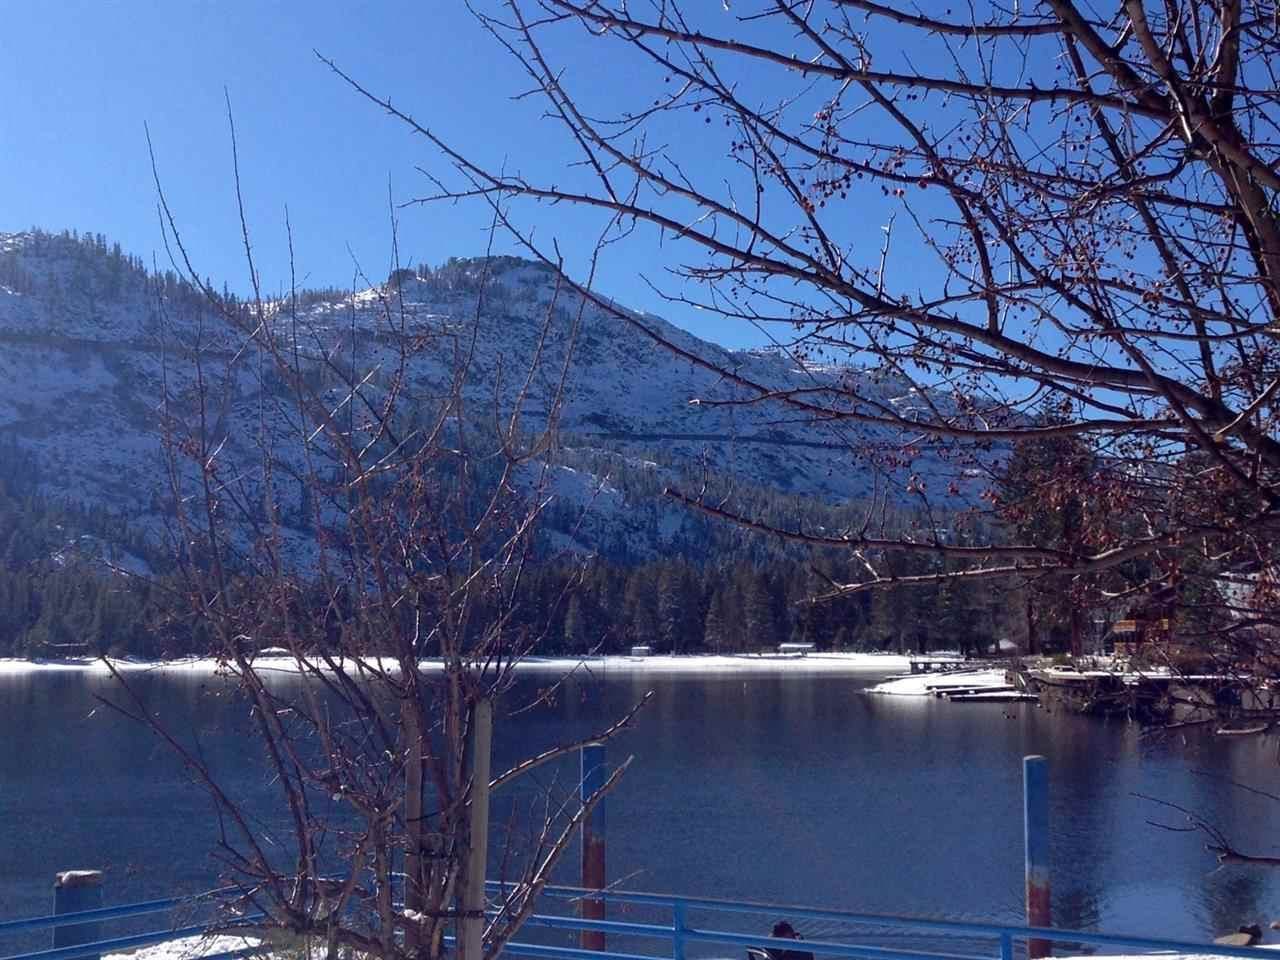 Condo / Townhouse for Active at 15775 Donner Pass Road Truckee, California 96161 United States